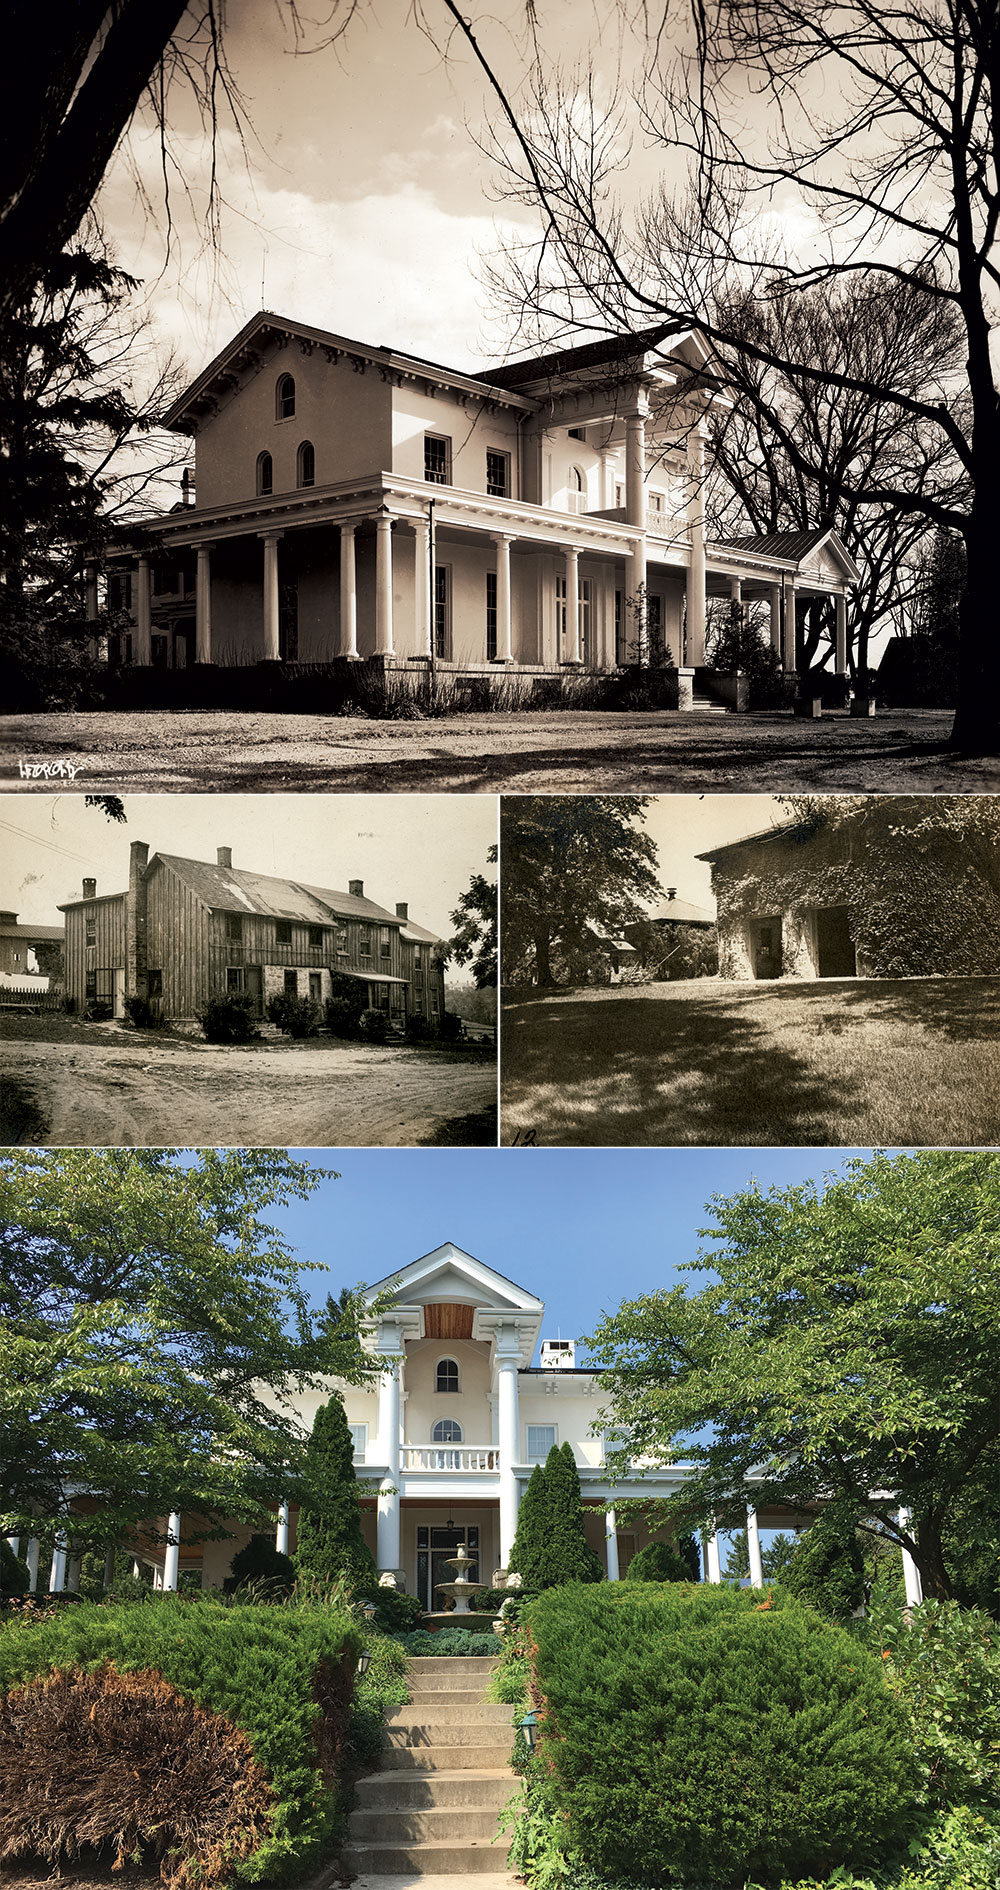 Views of Dumbarton. Old Noah deeded the estate to his eldest son, Patrick Henry Walker. Vintage views include the main residence, top, slave quarters, center left, and carriage house, center right. Dumbarton left the family in 1893. Below is the main residence today.